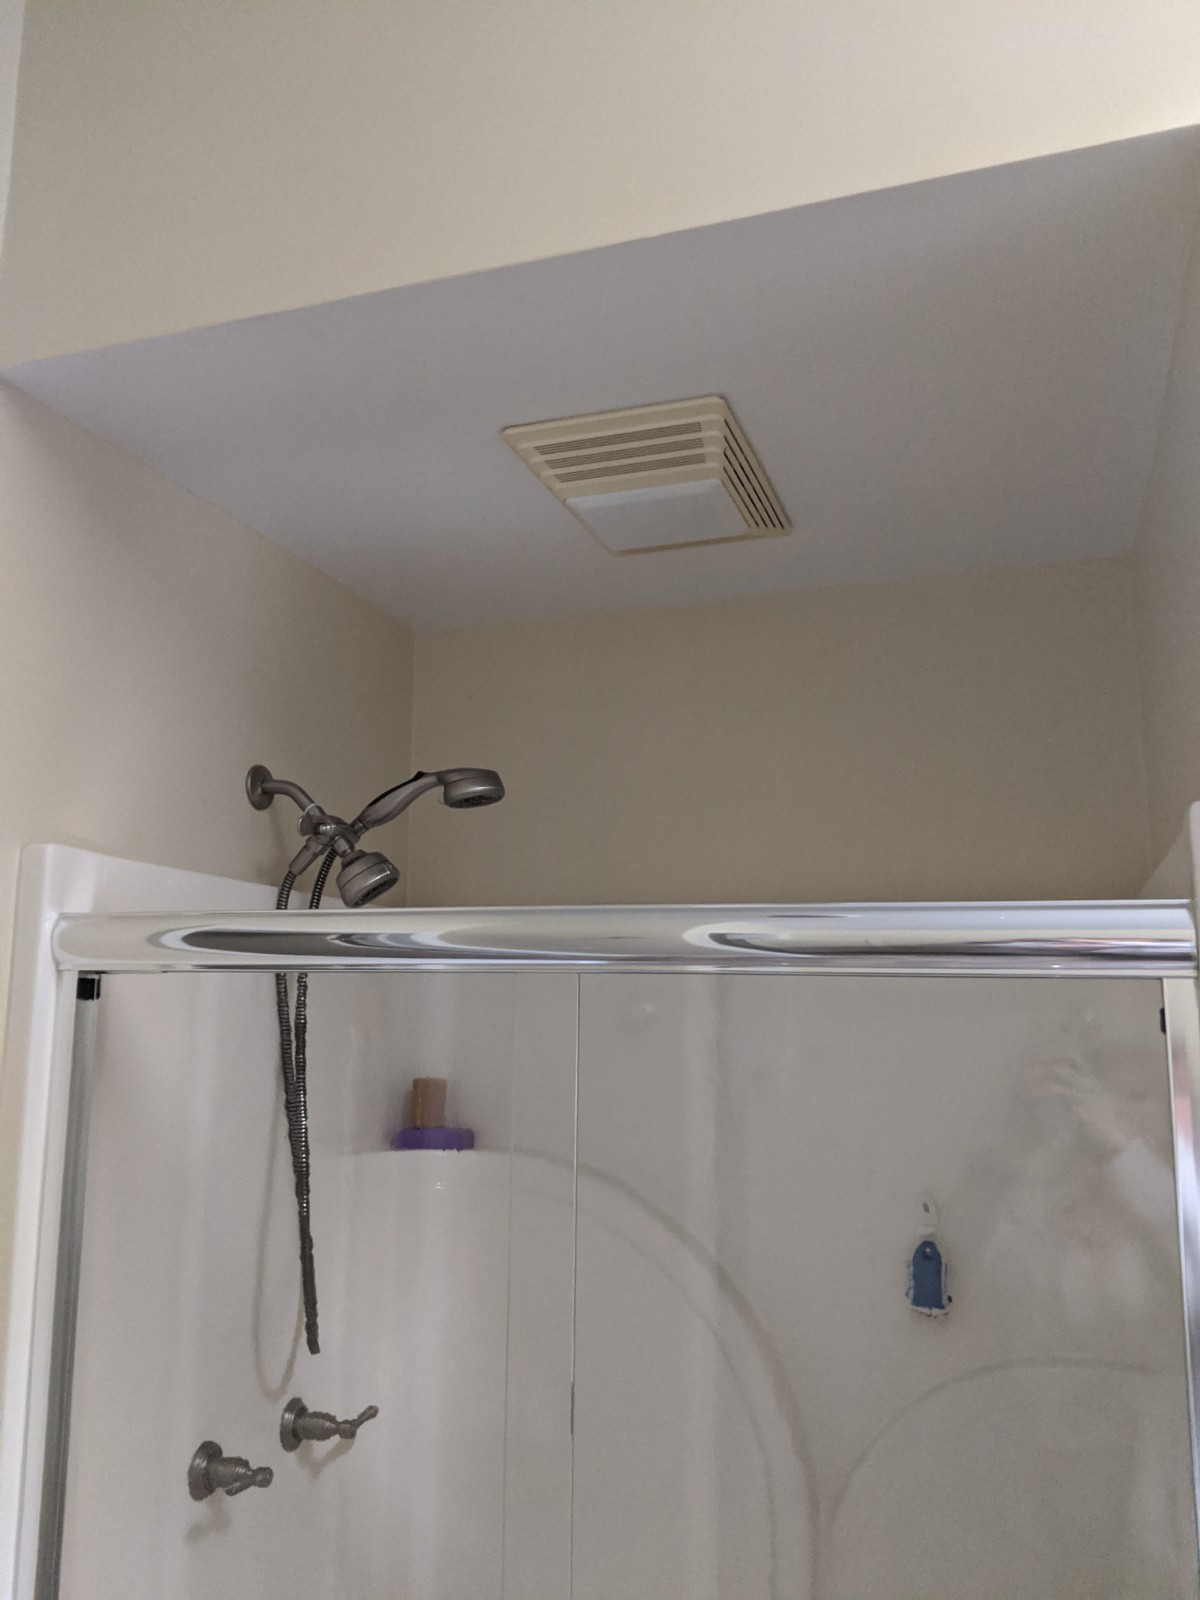 This is a before picture of a shower with just a surround